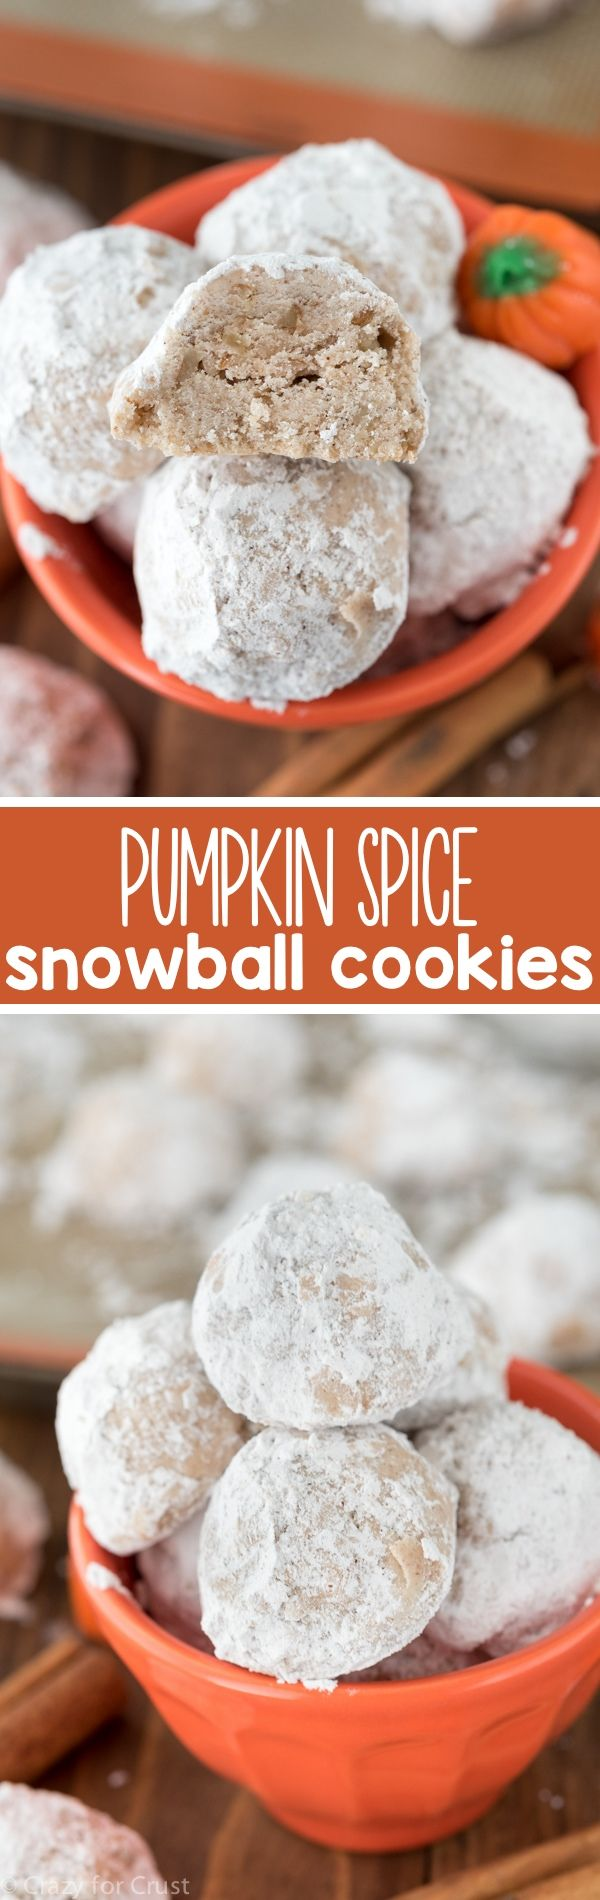 These Easy Pumpkin Spice Snowball Cookies are a family recipe. Warm pumpkin…